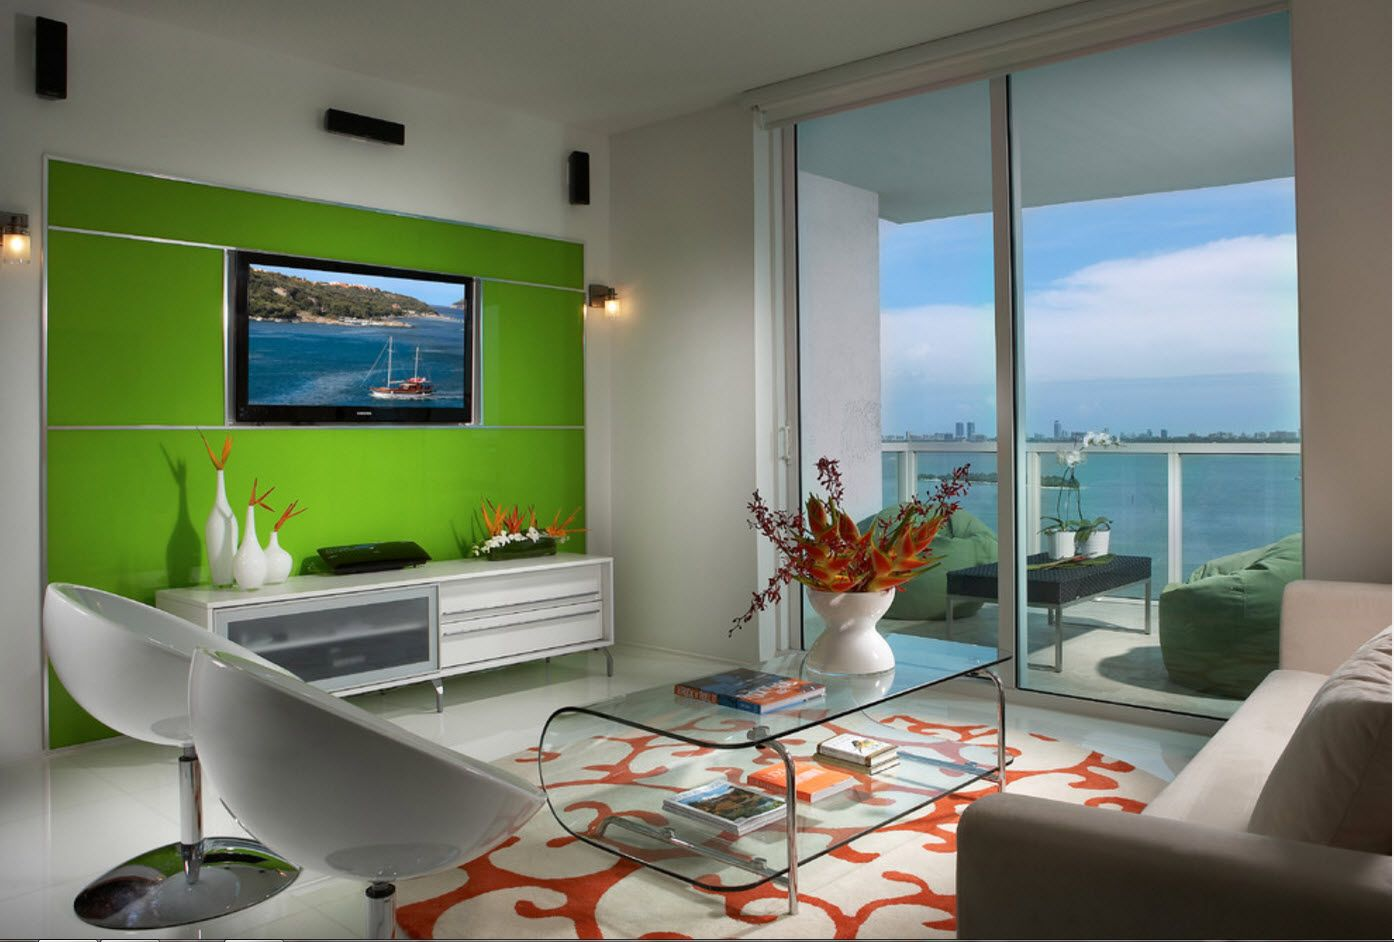 Green accent wall with modern LCD TV set